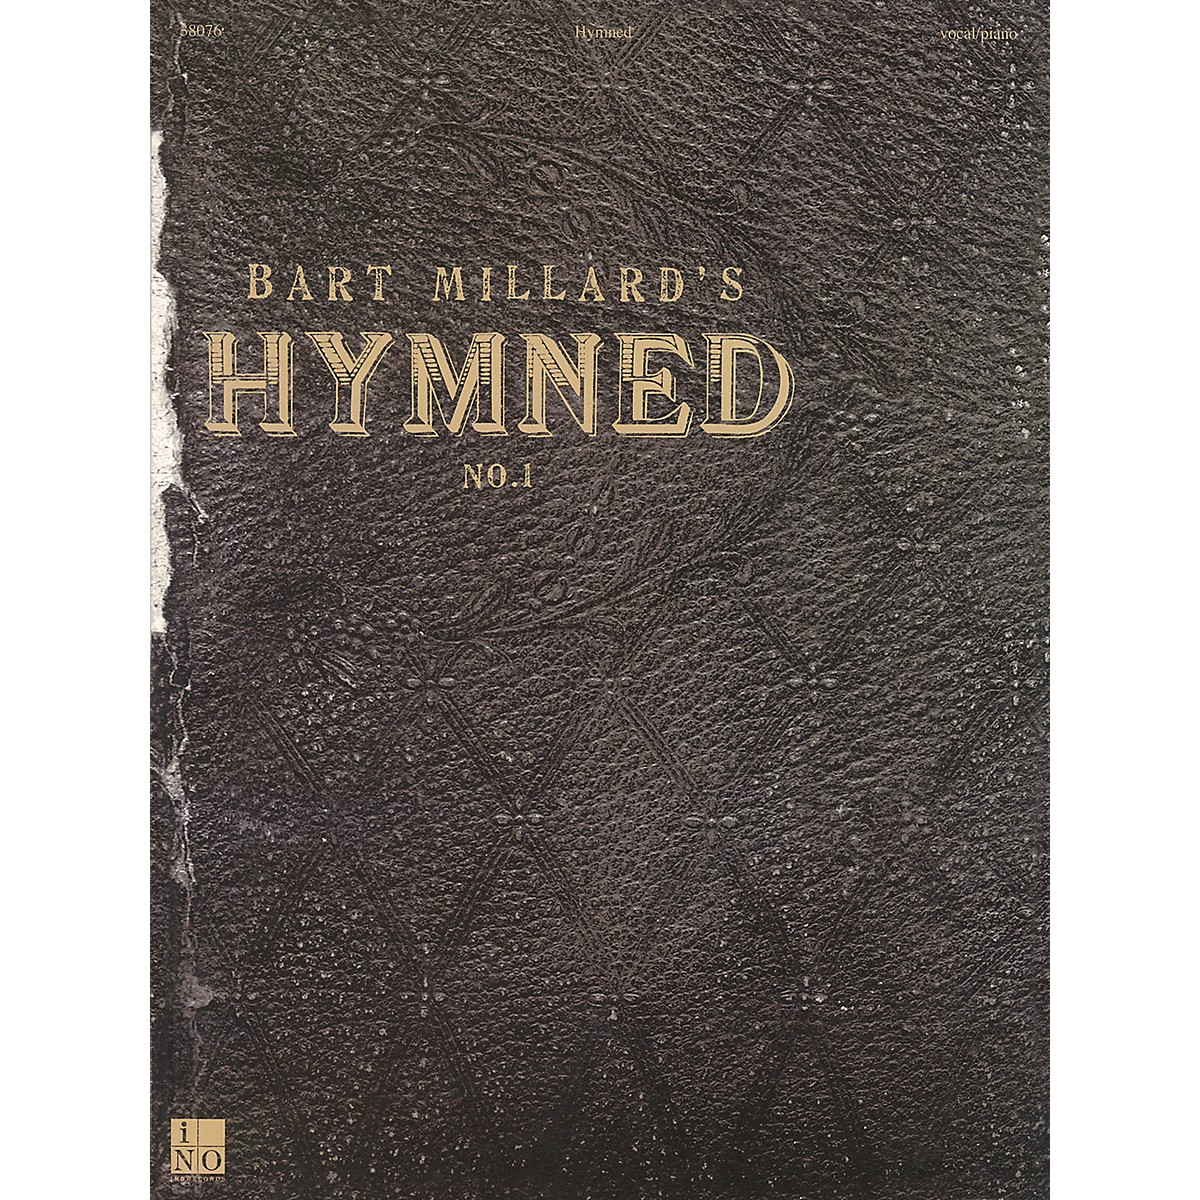 Integrity Music Bart Millard - Hymned No. 1 Integrity Series Softcover Performed by Bart Millard